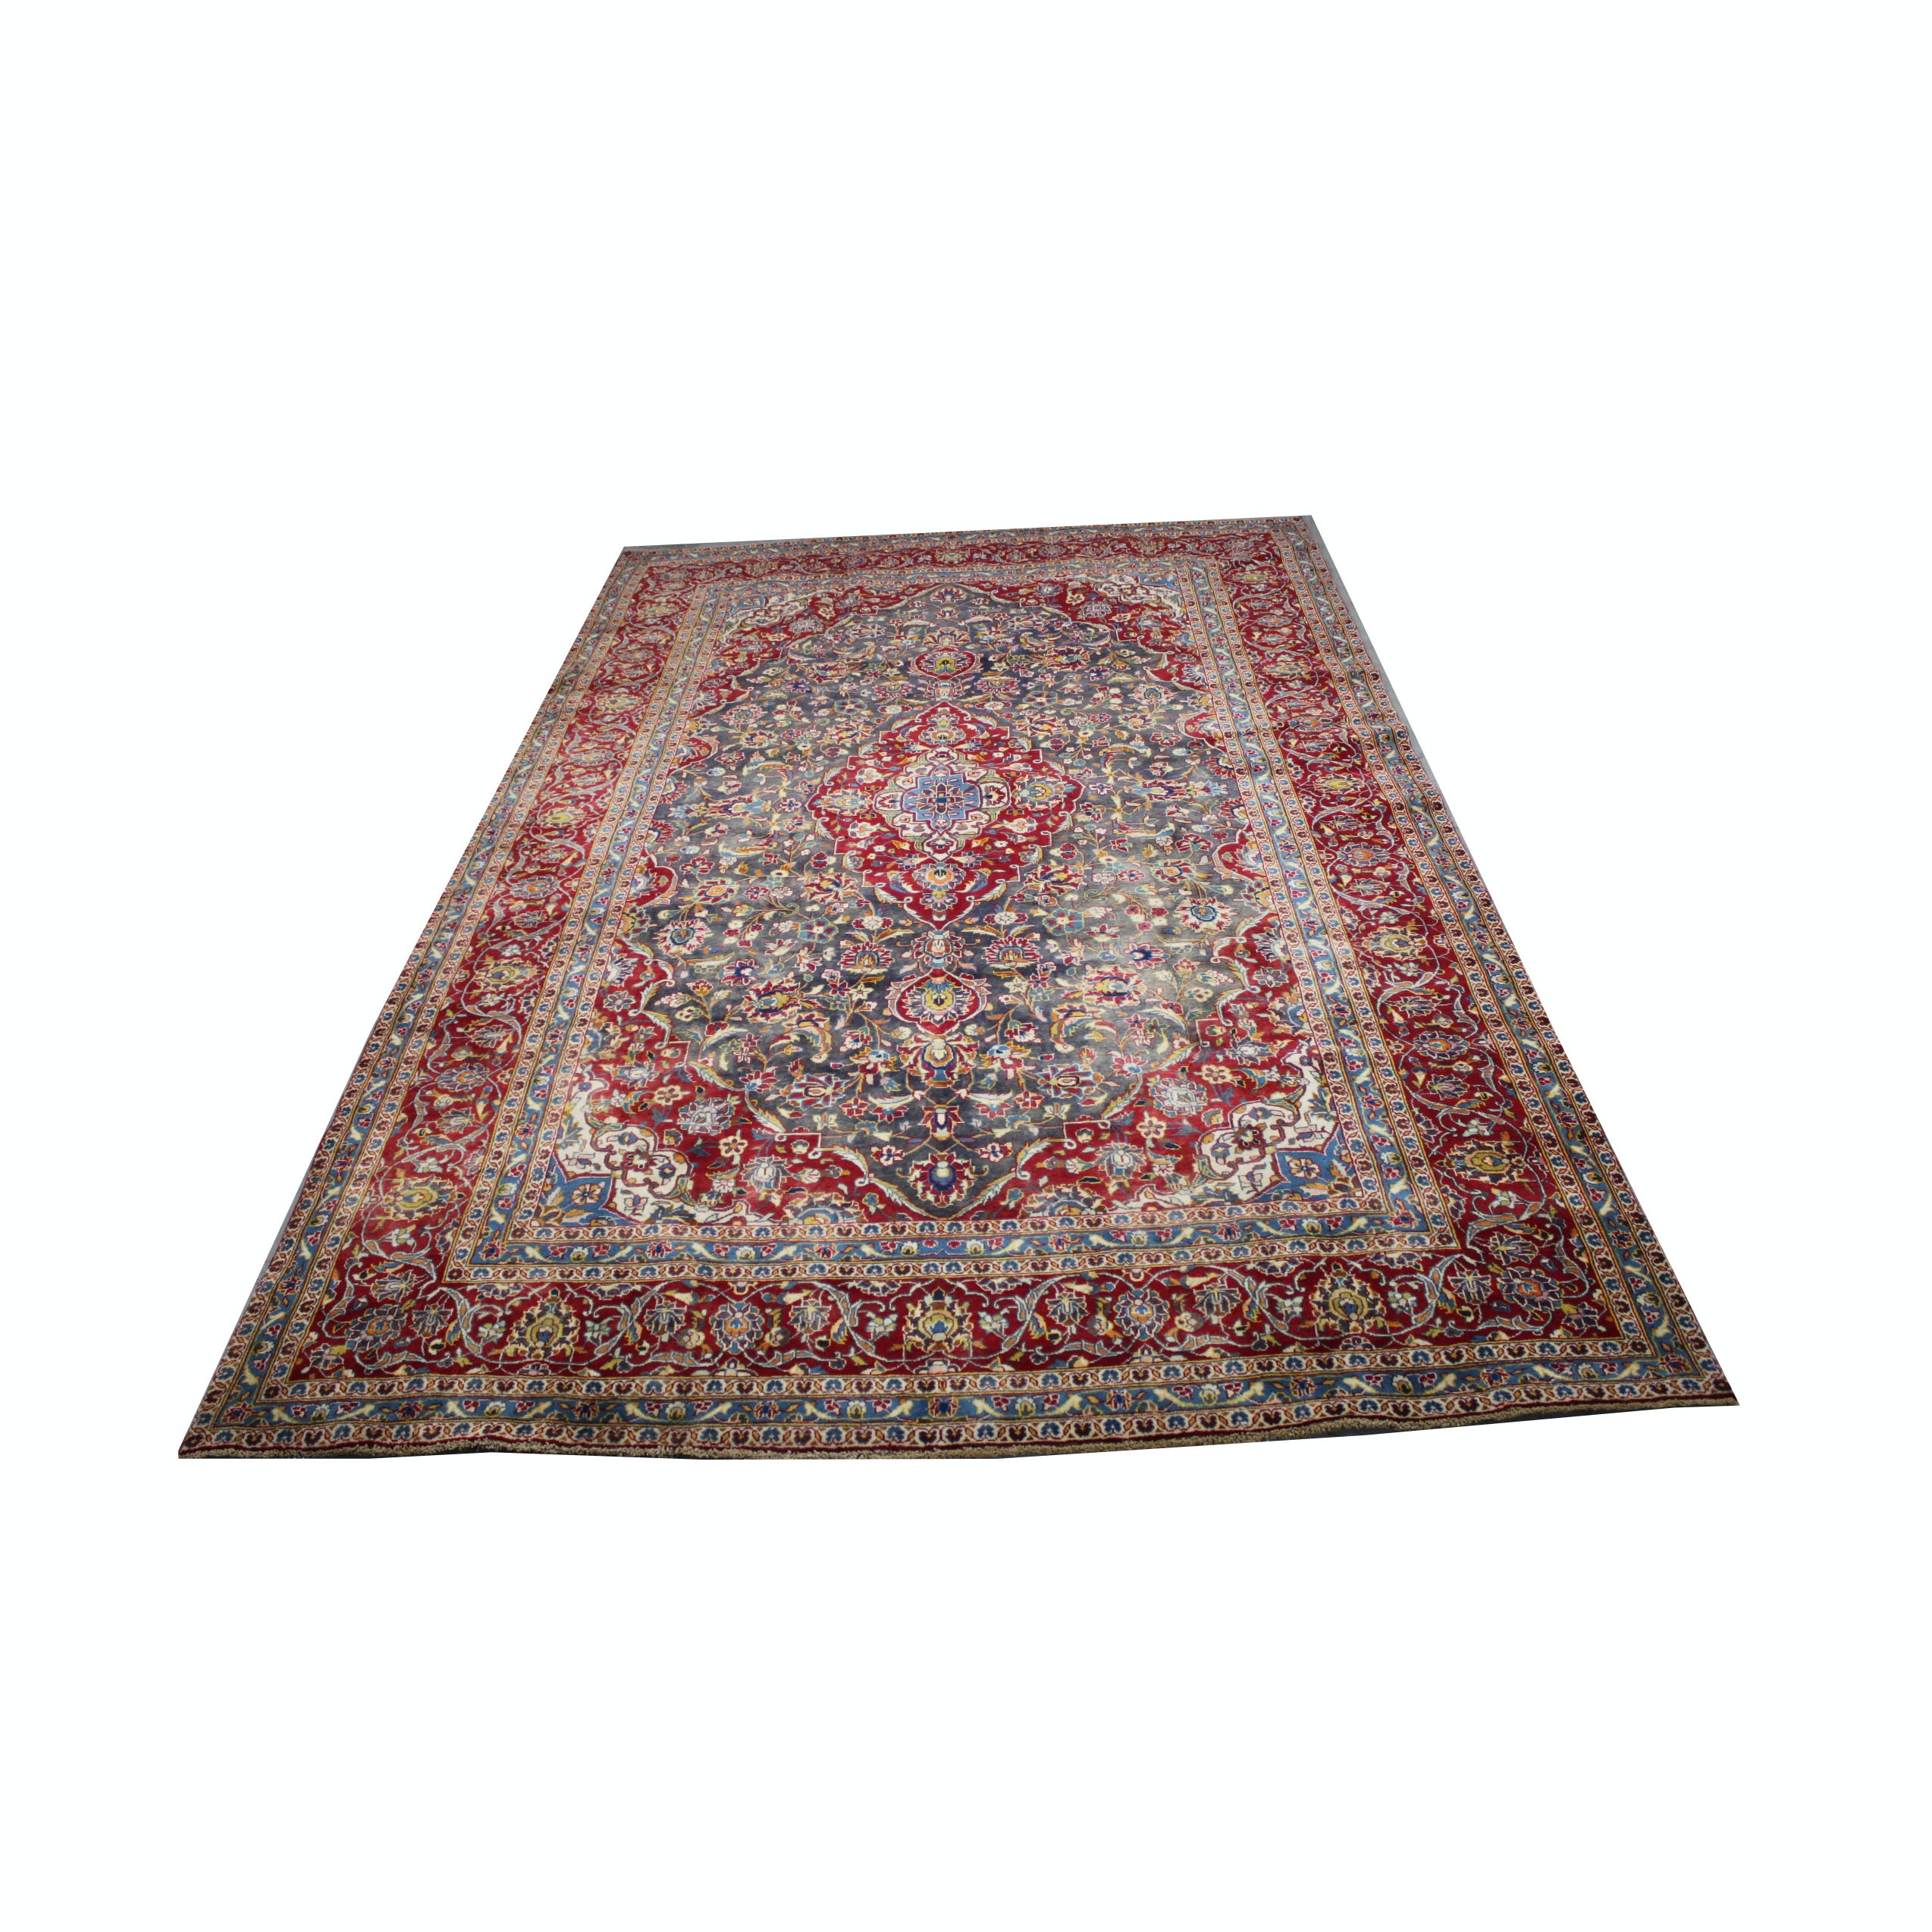 Large Hand-Knotted Persian Kashan Area Rug